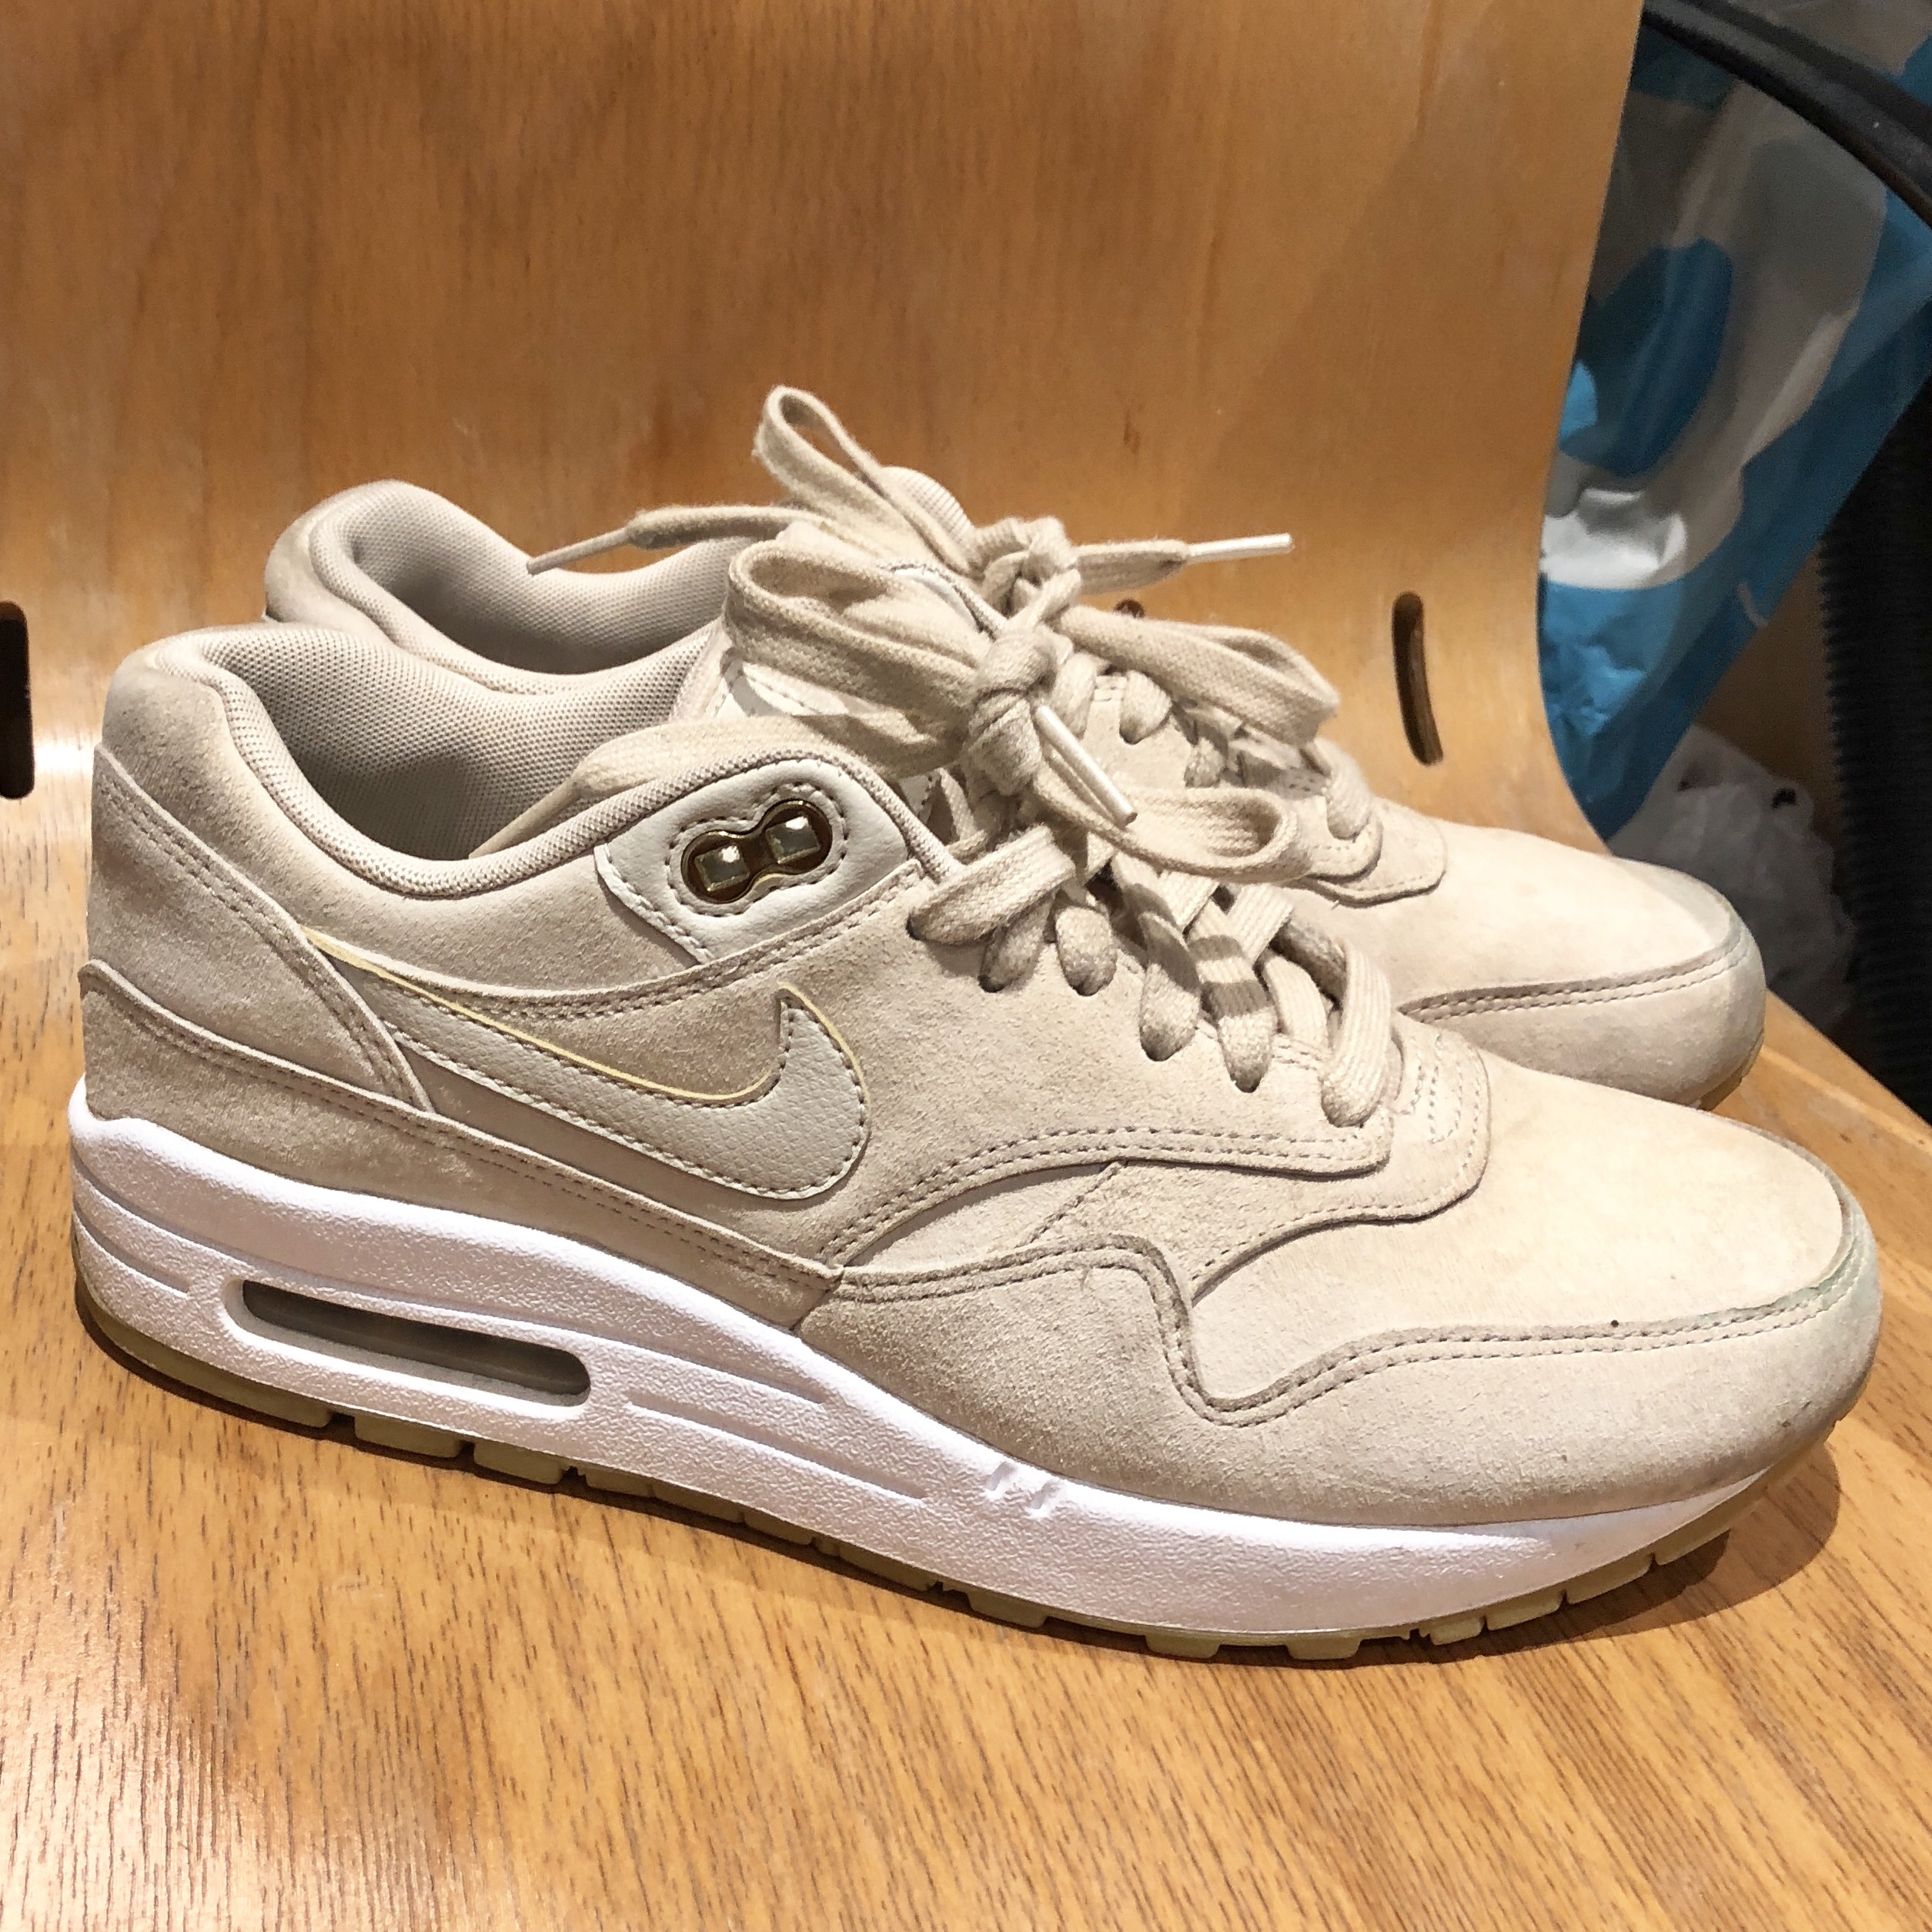 NIKE AIR MAX 1 SD premium suede and exceptional Depop